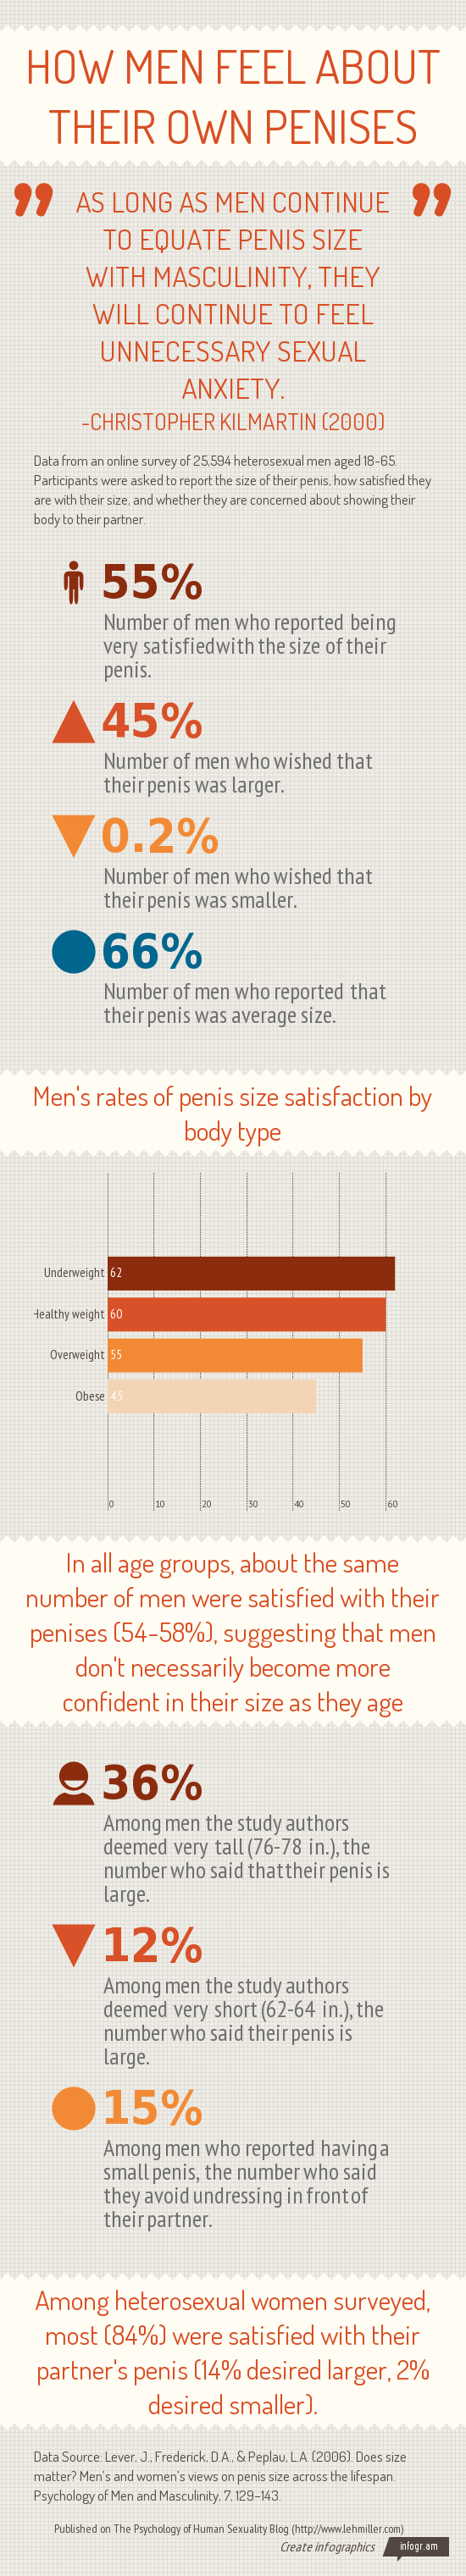 Infographic showing data on how men feel about their own penises